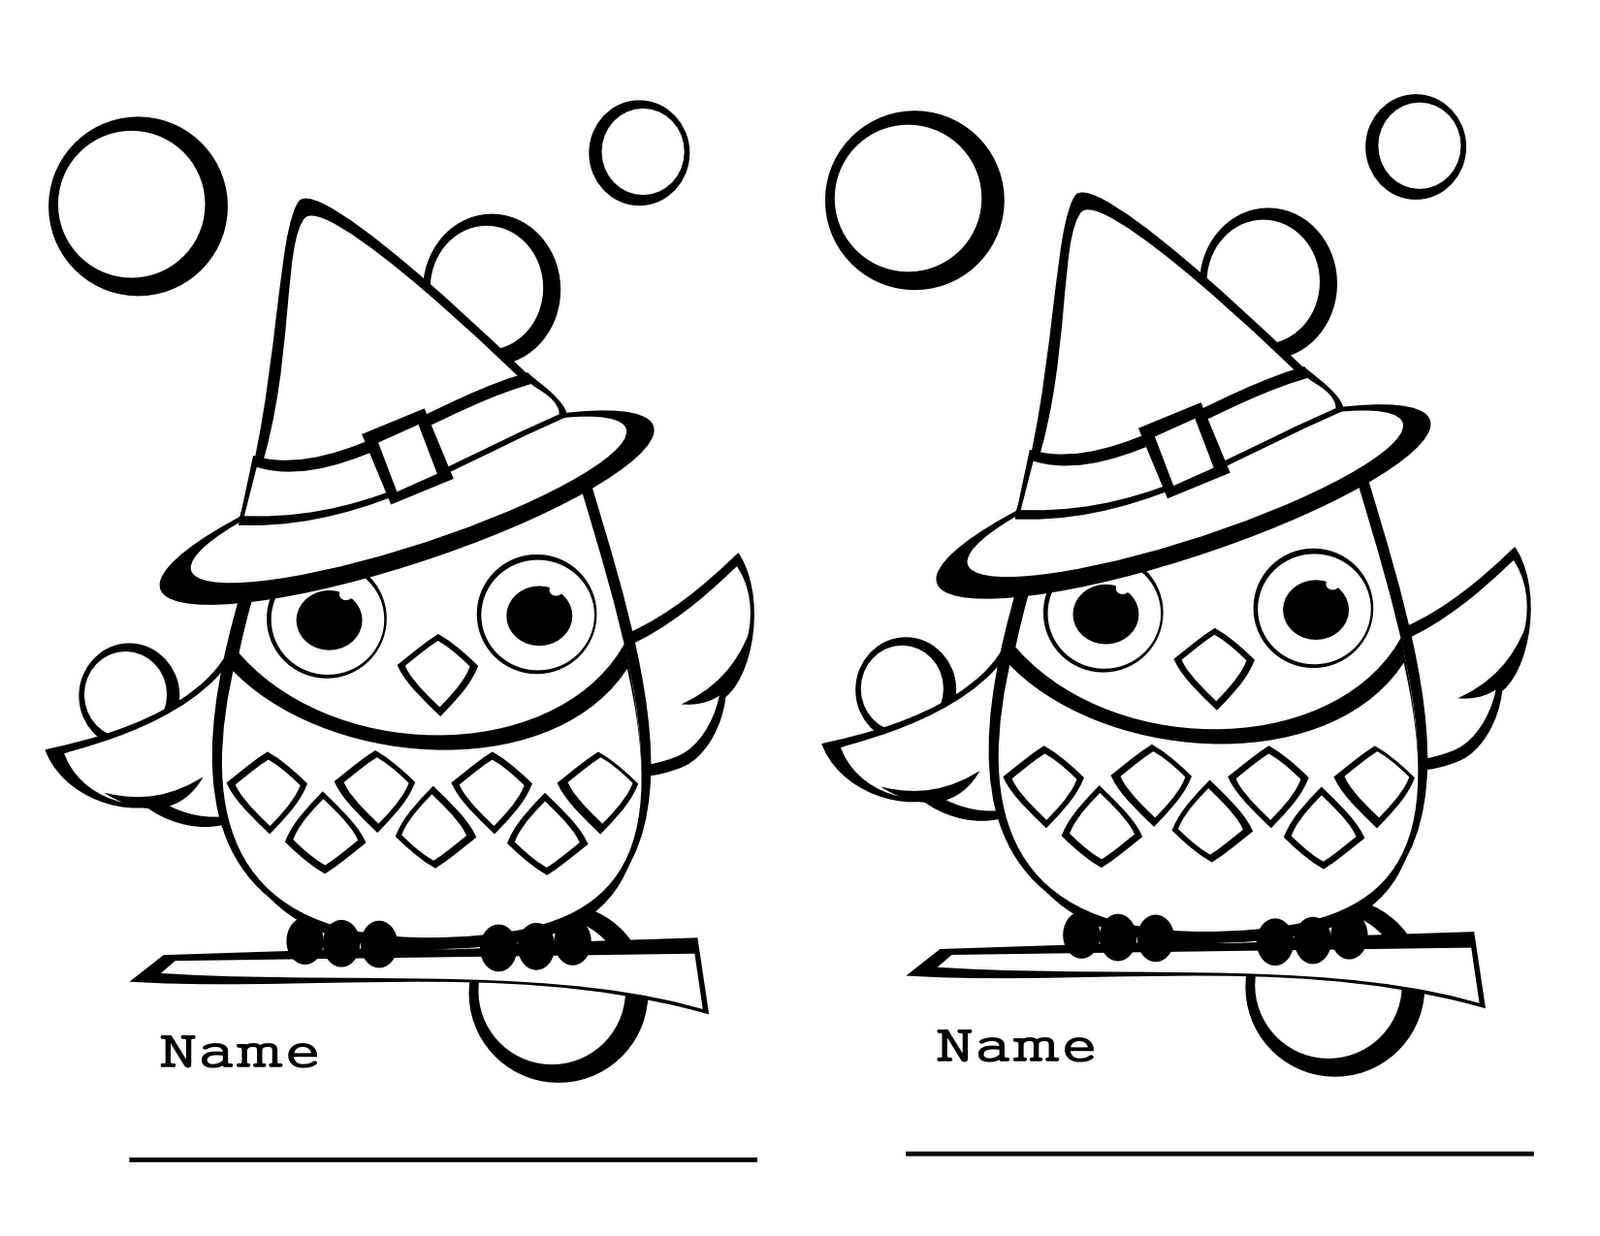 cute coloring pages of owls coloring pages owl themed 10 pc by bddesigncrafts on etsy owls coloring cute pages of